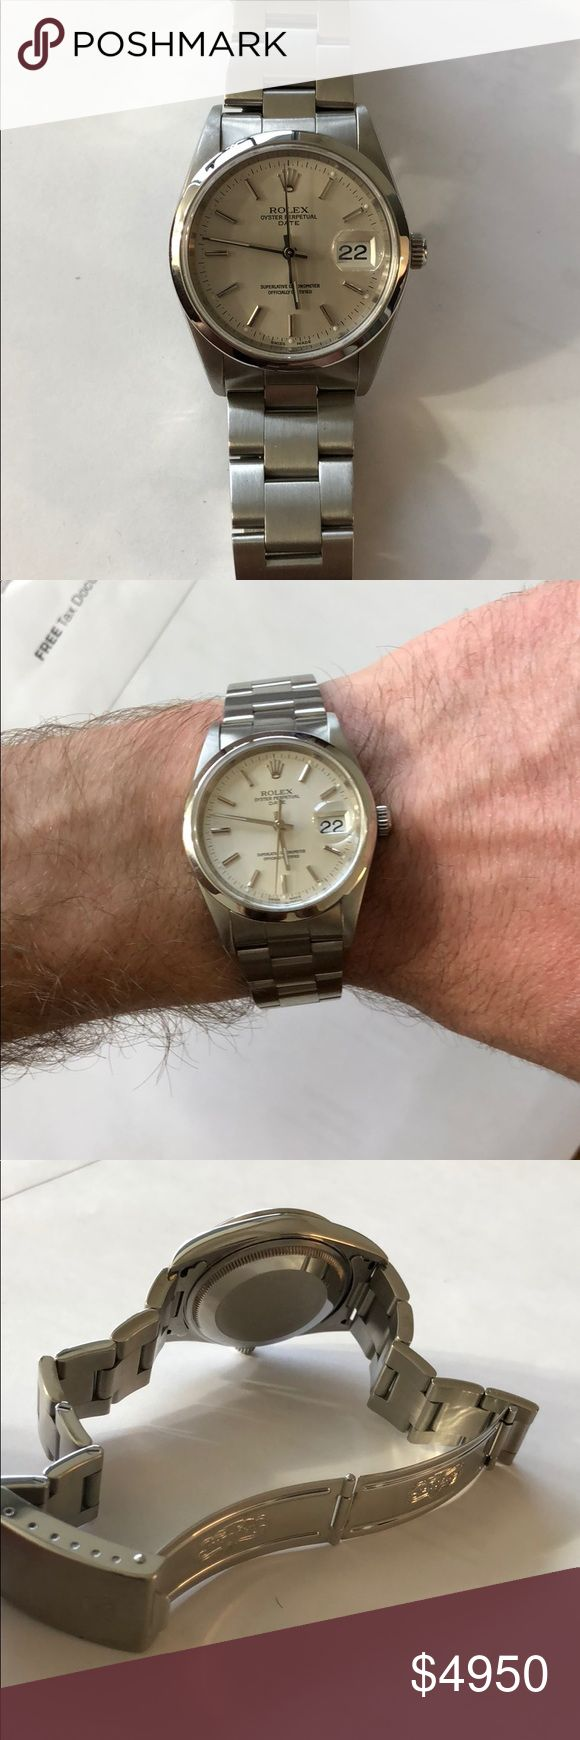 Rolex Date 15200 Silver Rolex Date, model 15200, 34mm. Recently purchased online through a used watch verification site, but I don't like the size for my wrist personally.   Excellent condition, no scratches/scuffs/dings. Automatic watch running great.   Happy to answer any questions. Rolex Accessories Watches #Rolexwatchesused